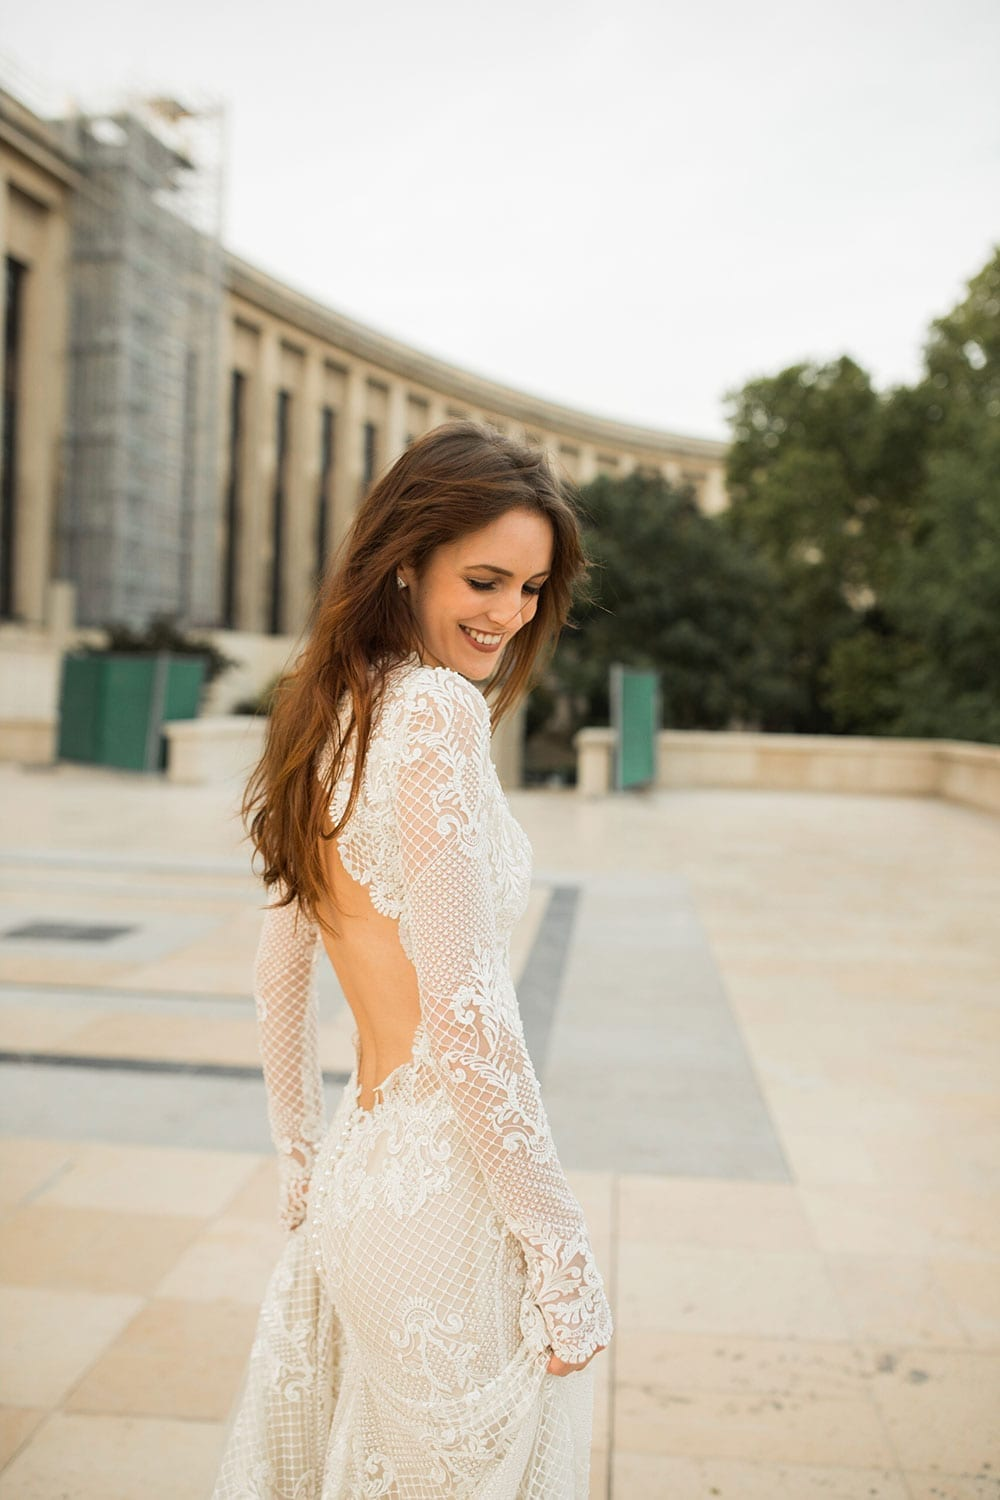 Model wearing Vinka Design Hayley Wedding Dress, a stunning fitted lace wedding dress with a divine low back, high neckline and fitted yet shaped sleeves. The lace is beautifully beaded and the gown is finished with little pearls. Parisian plaza and grand buildings in background.